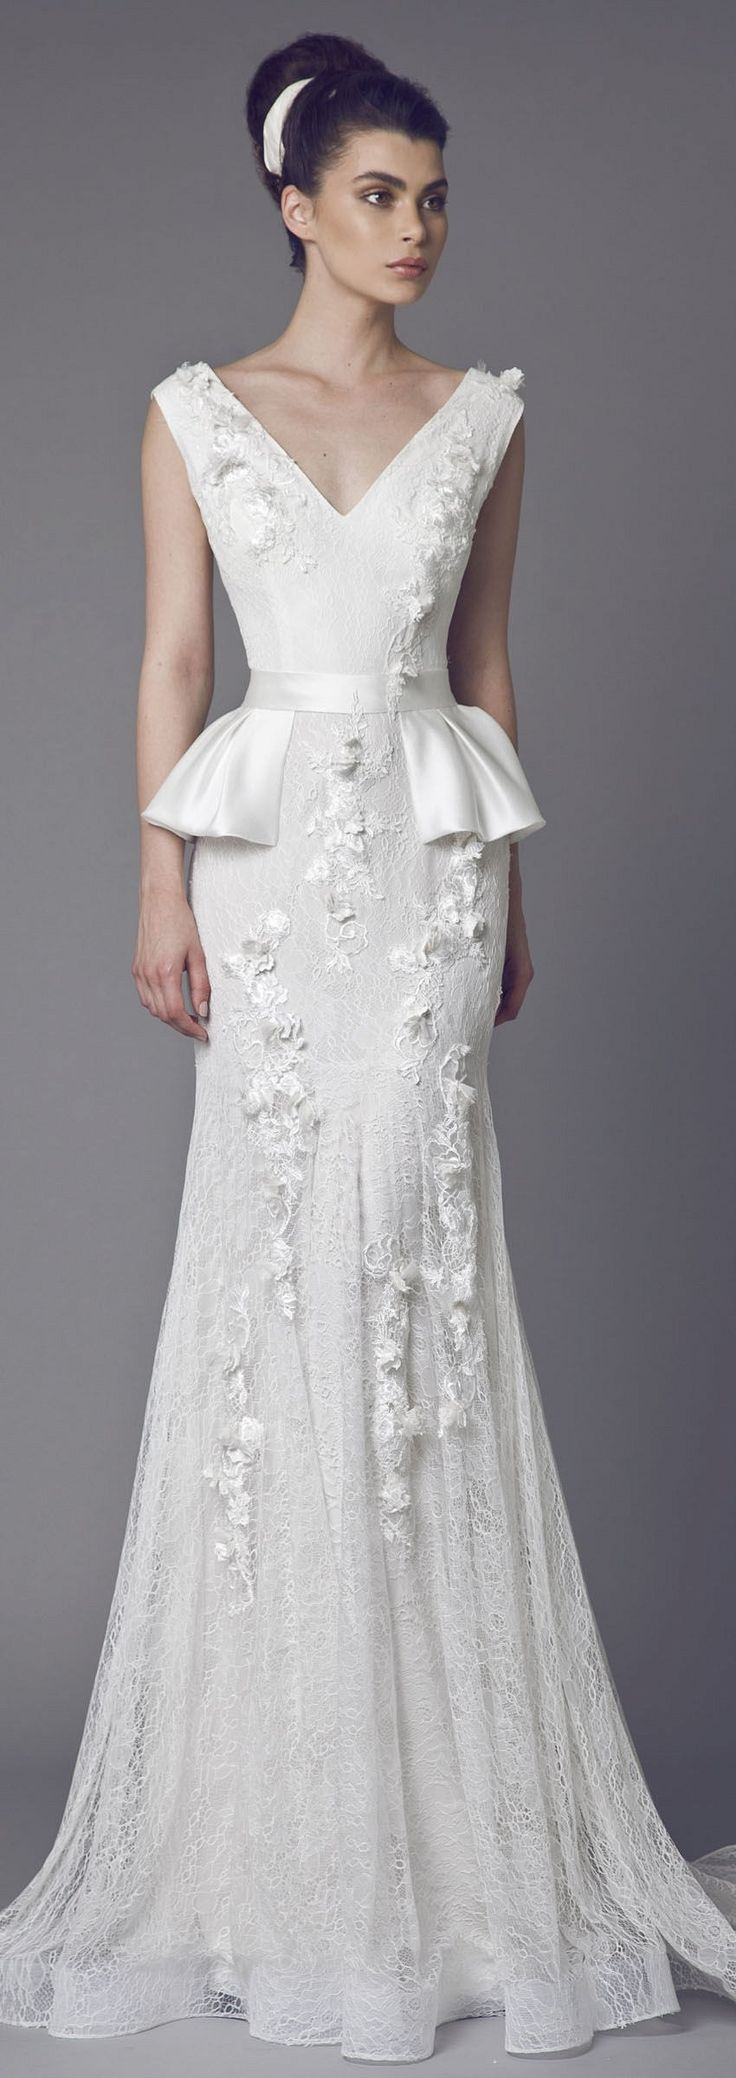 Tony Ward 2015 Bridal Collection #coupon code nicesup123 gets 25% off at  www.Provestra.com www.Skinception.com and www.leadingedgehealth.com